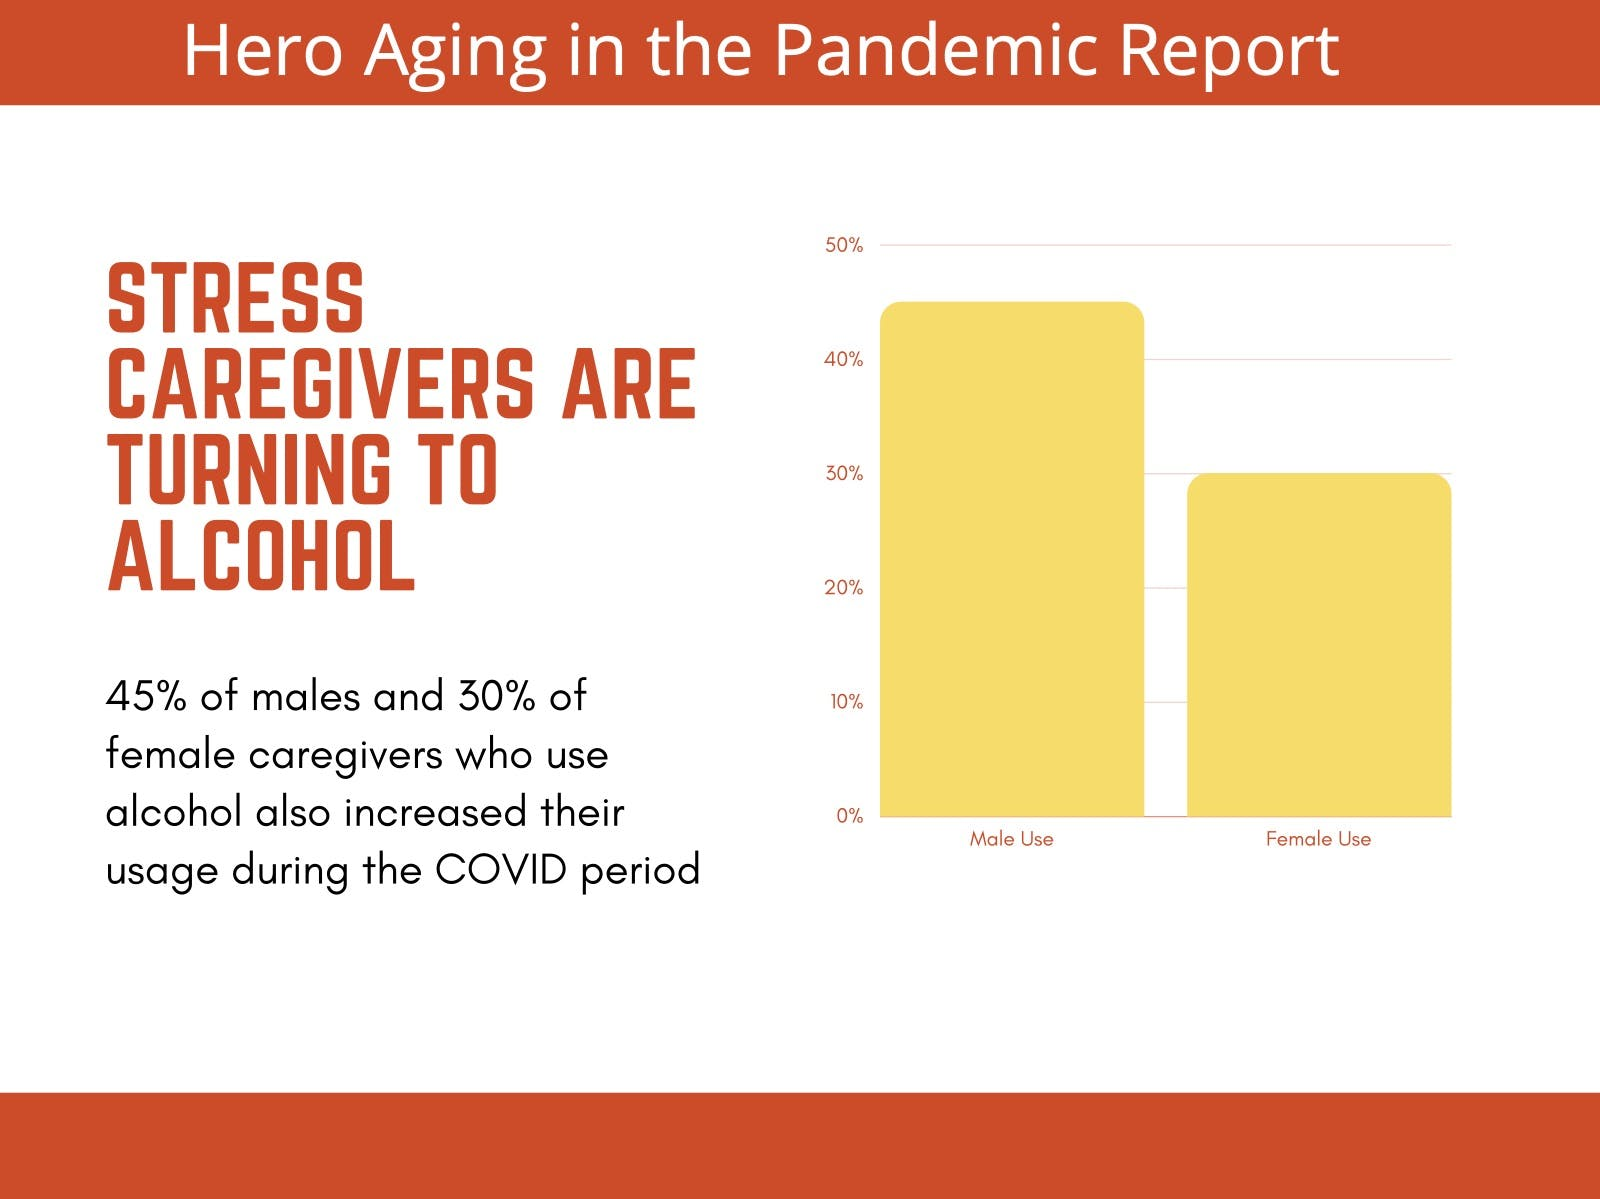 A bar graph showing that 45% of males and 30% of female caregivers who use alcohol also increased their usage during the COVID-19 pandemic.